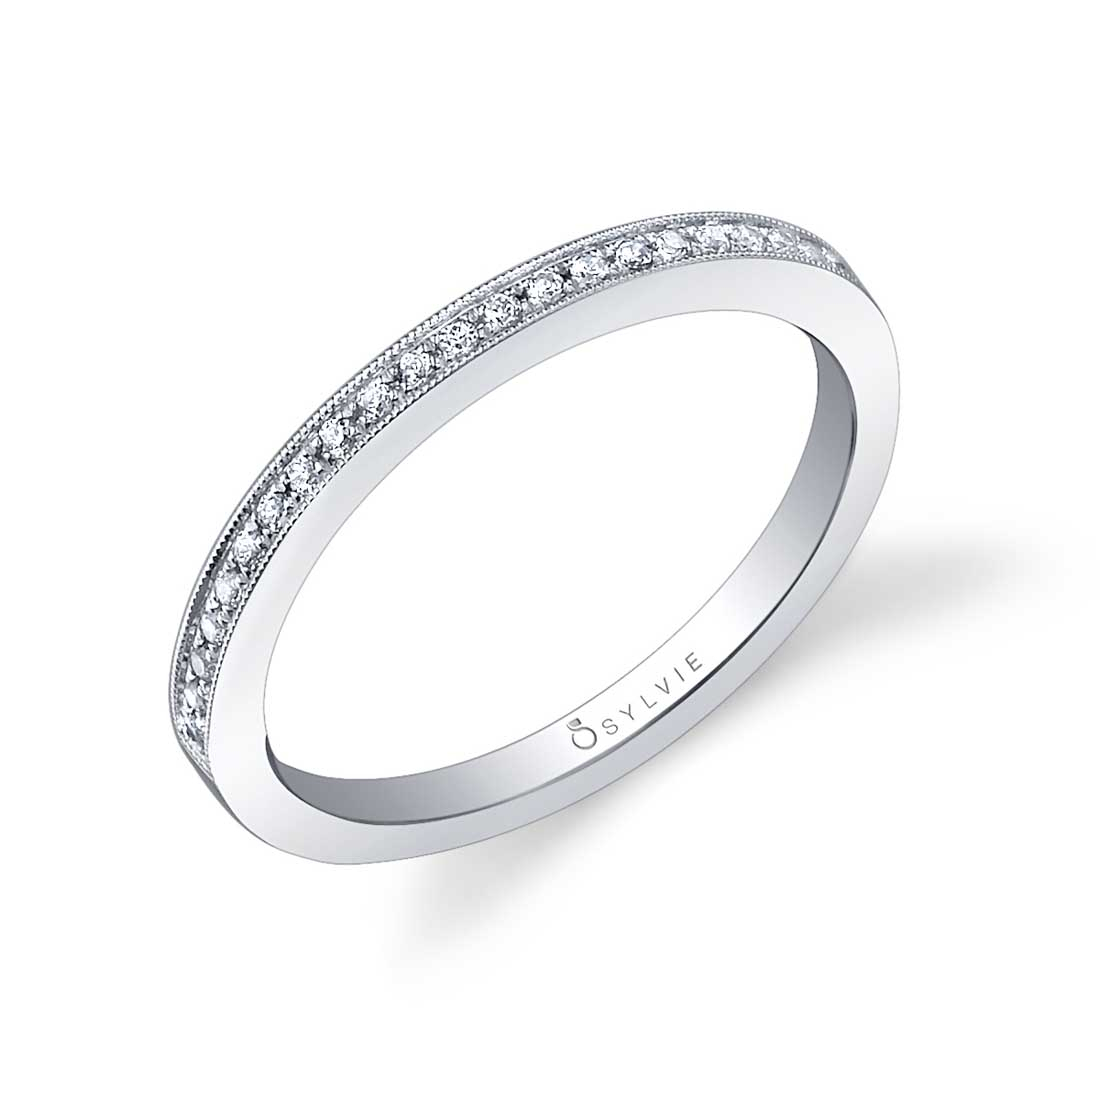 White Gold Diamond Wedding Band With Milgrain Accents Within Best And Newest Diamond And Milgrain Anniversary Bands In White Gold (View 6 of 25)